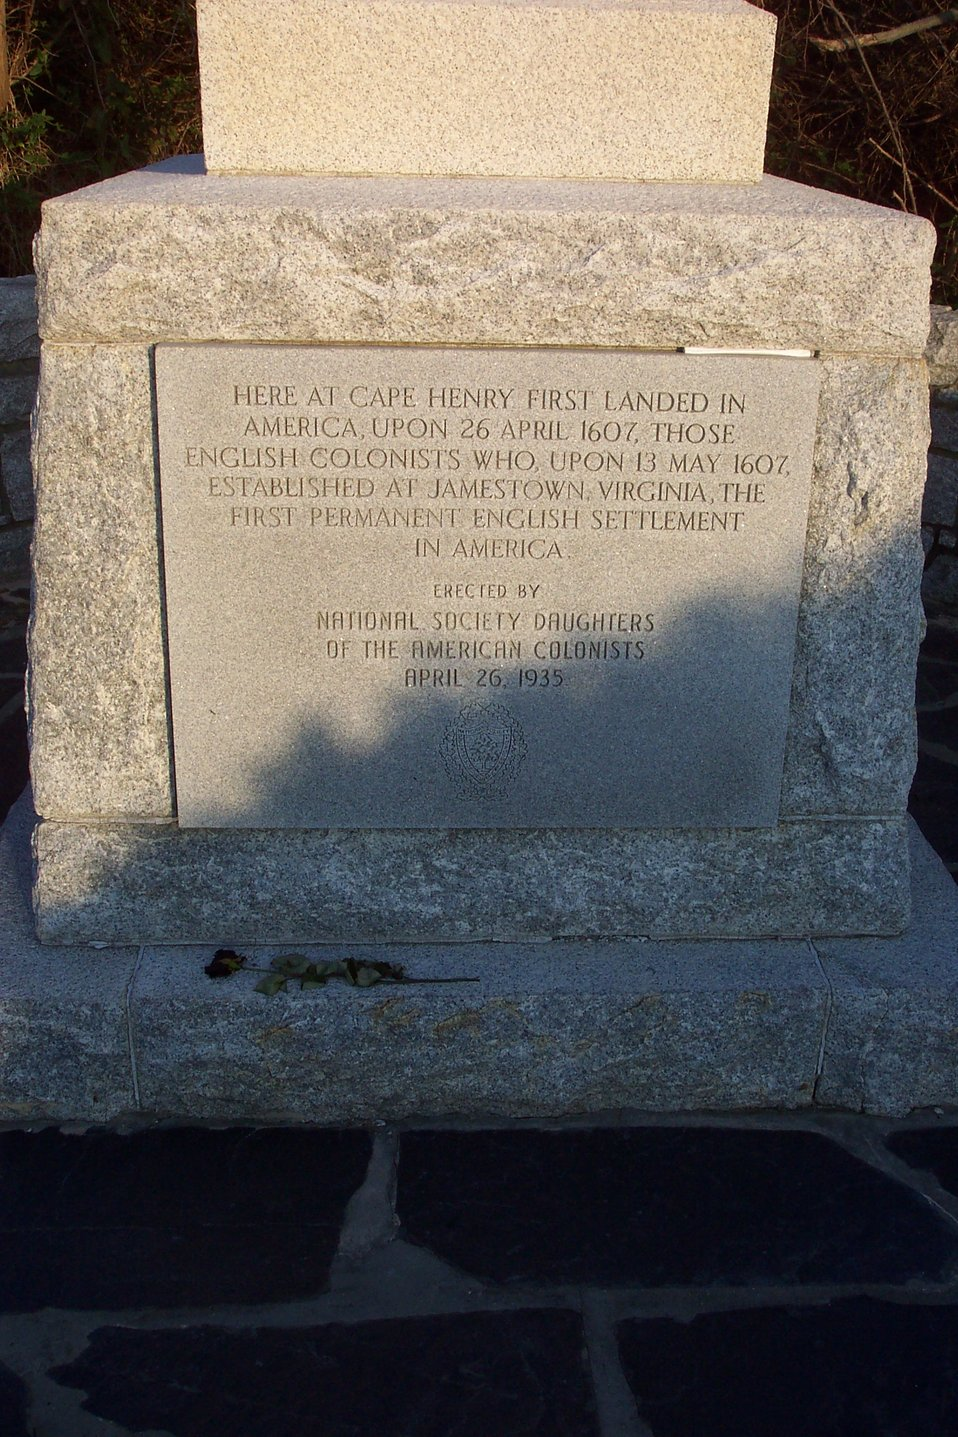 Close-up view of plaque commemorating first English colonists who landed at Cape Henry on April 26, 1607.